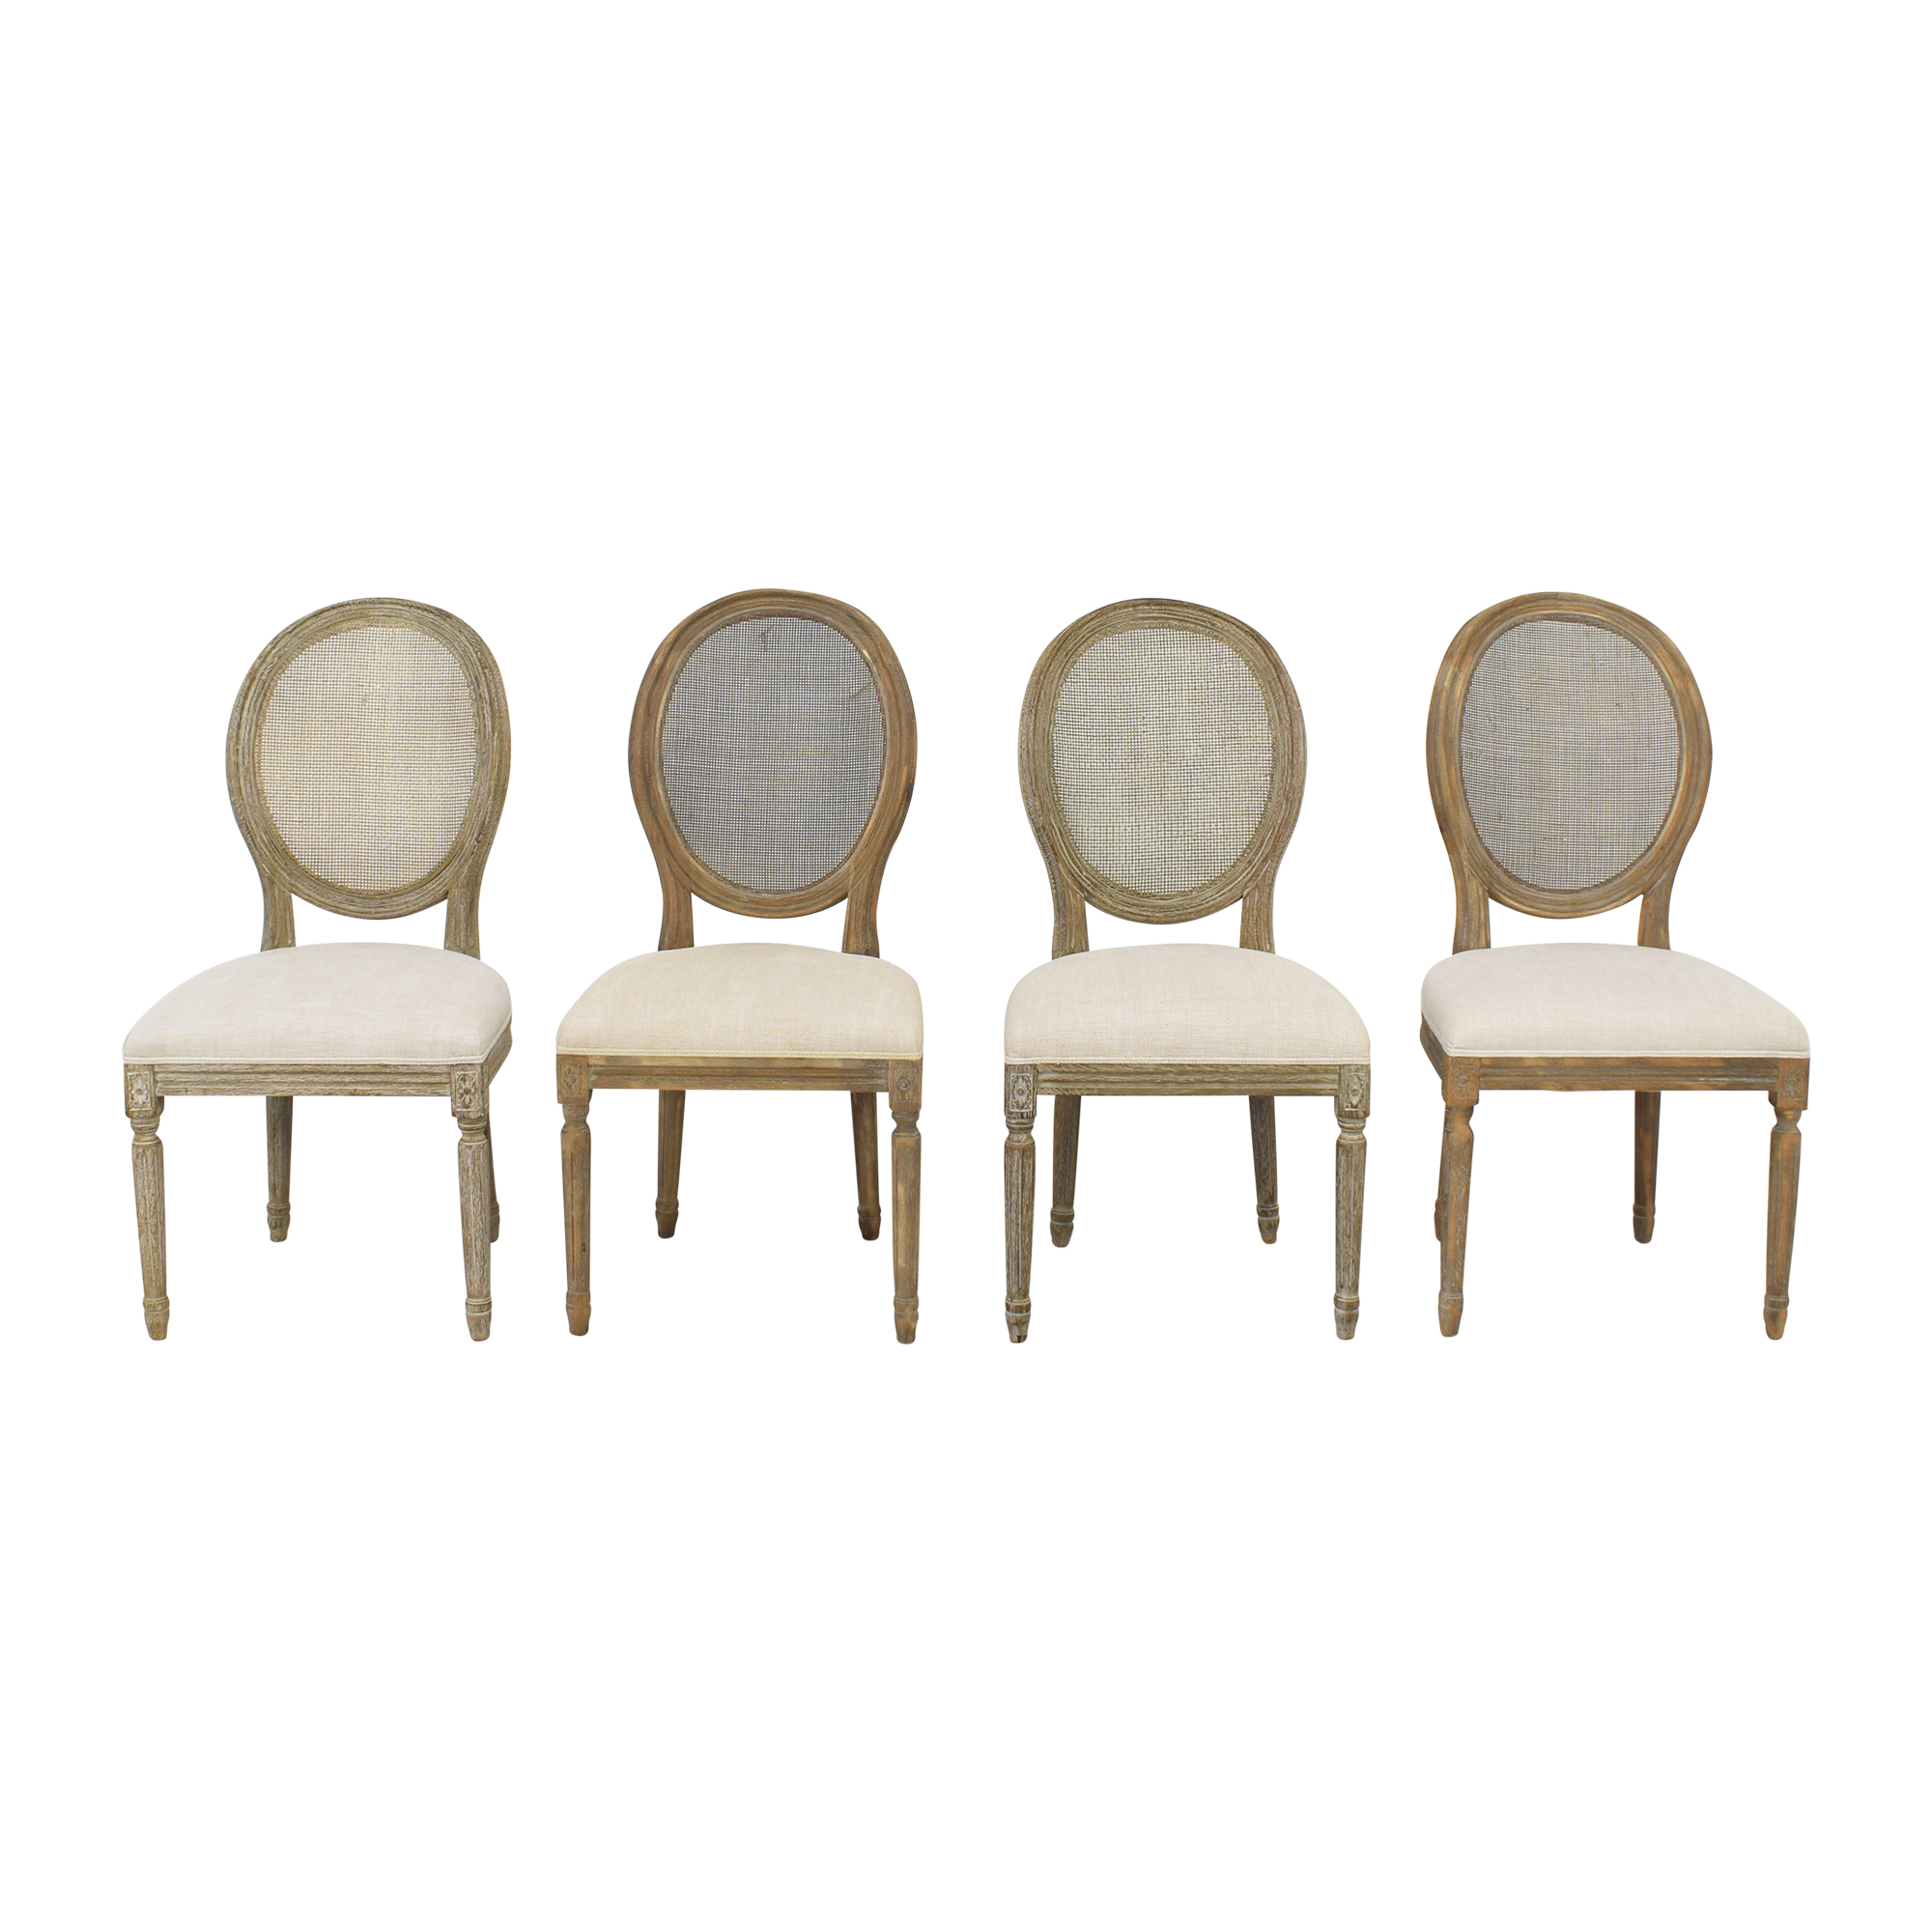 Restoration Hardware Vintage French Round Side Chairs / Chairs